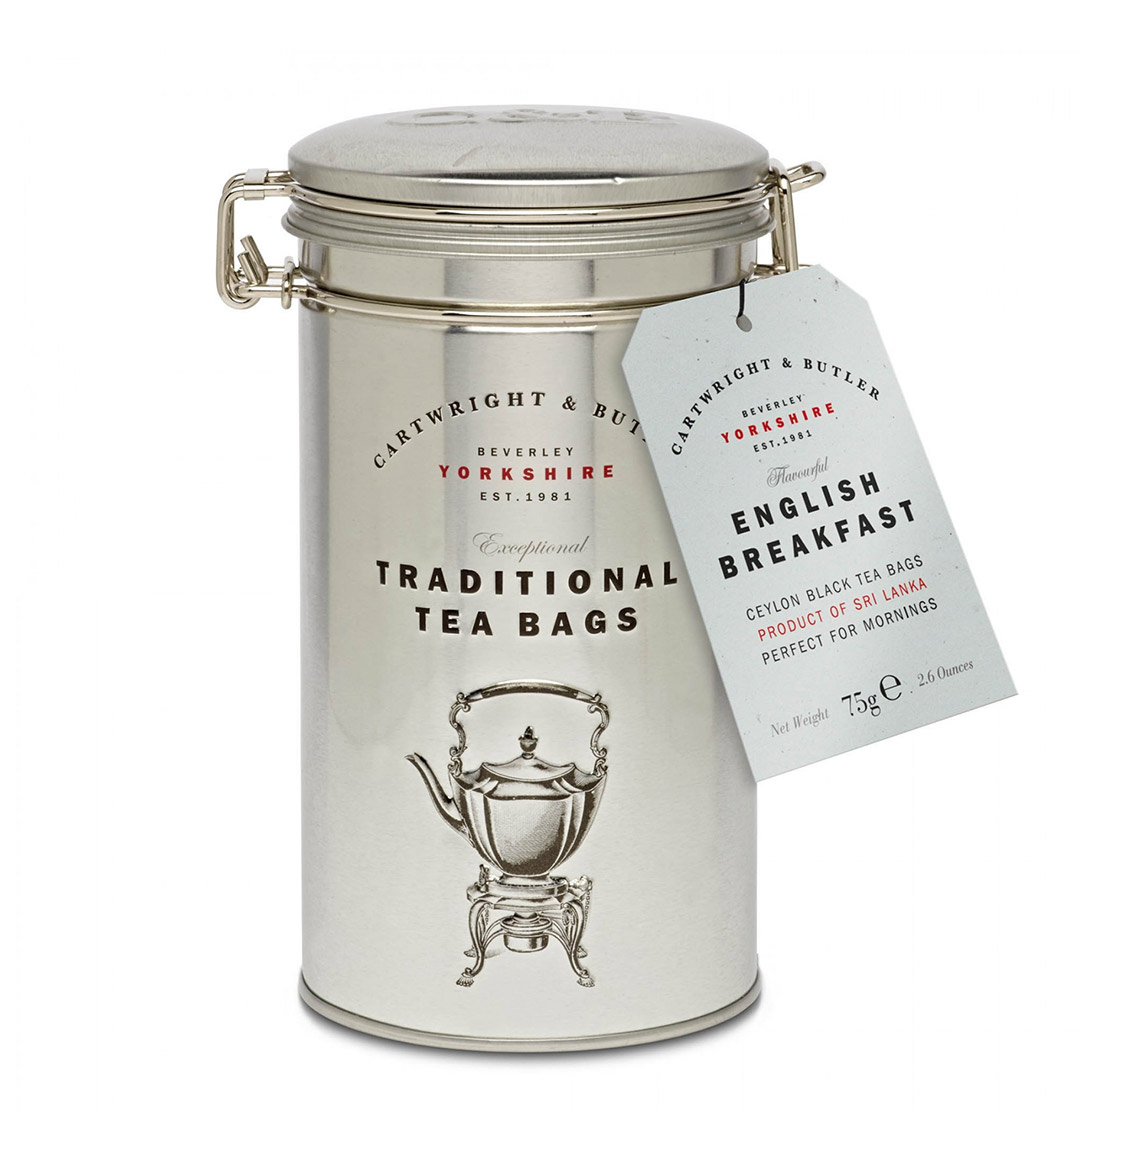 Cartwright_And_Butler_English_Breakfast_Tea_Bags_in_Caddy_The_Project_Garments_A